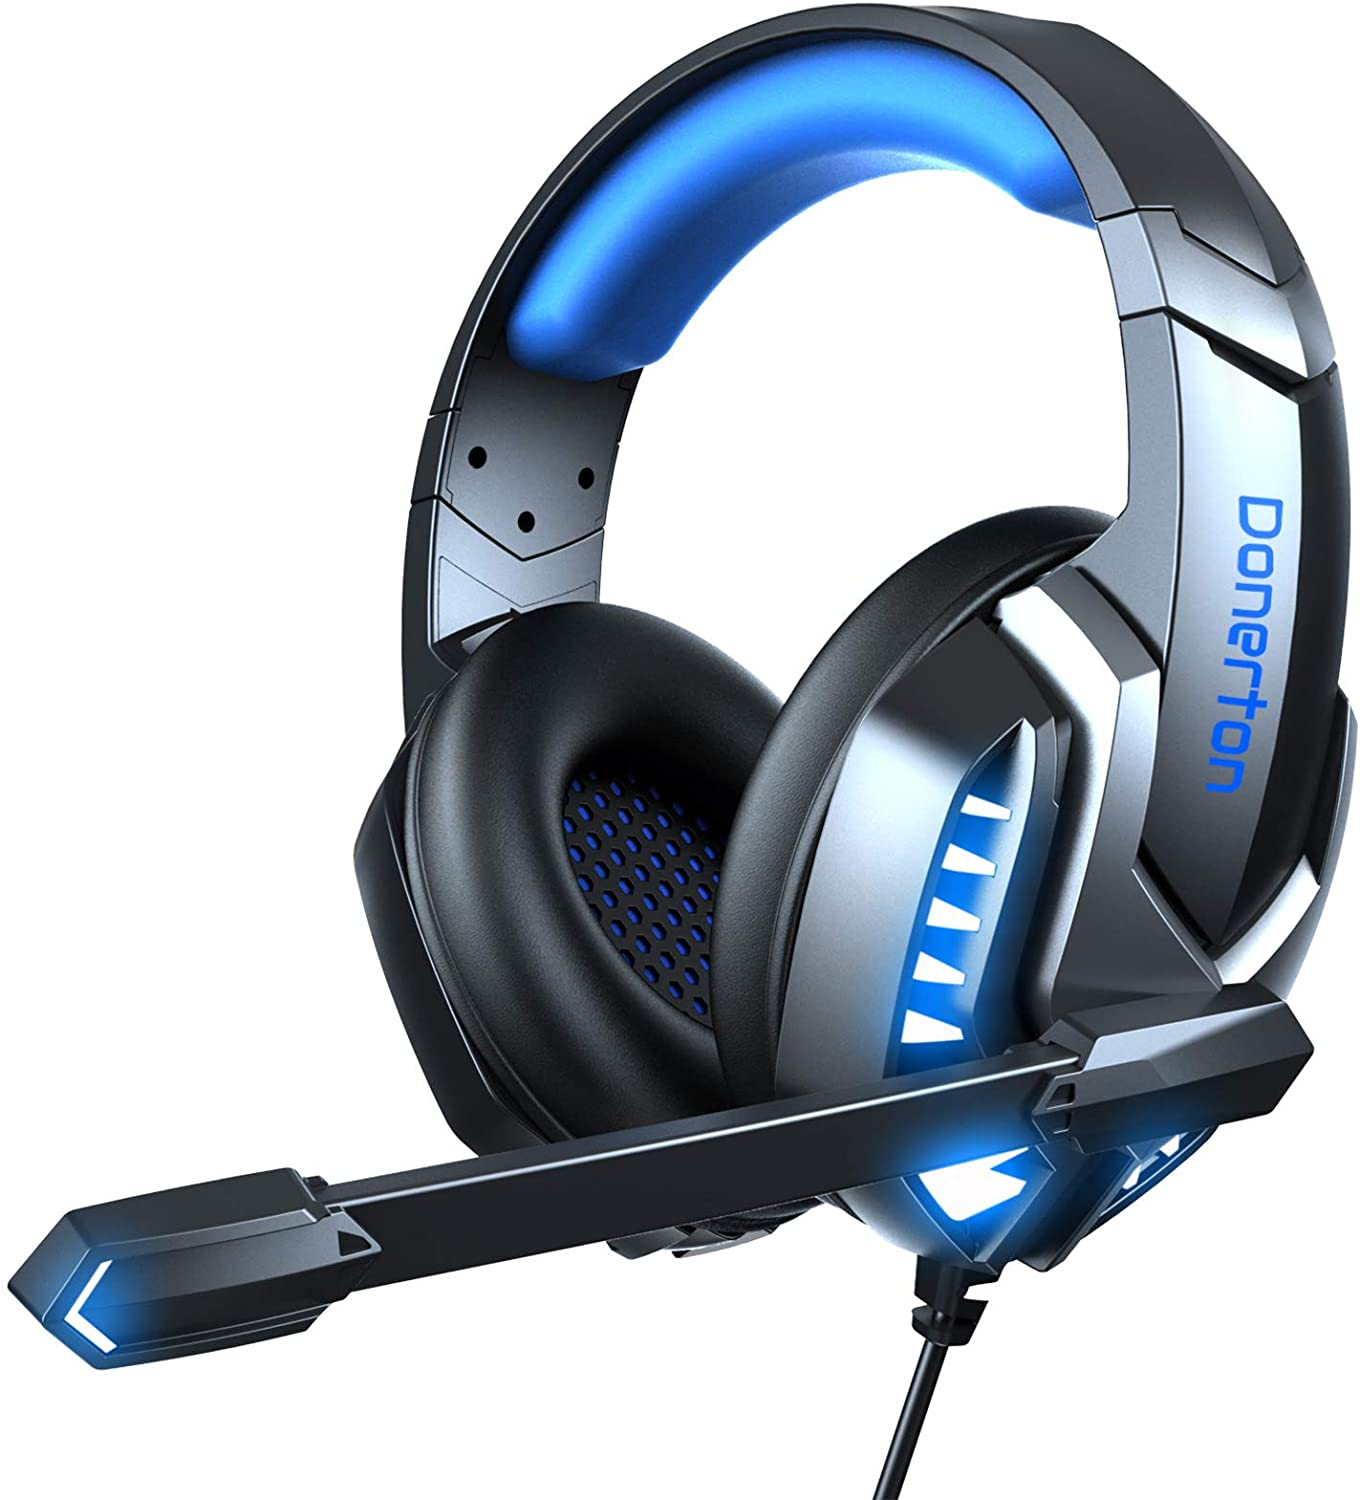 Donerton Gaming Headset, Over-Ear Gaming Headphones with Noise Canceling Mic, Stereo Bass Surround Sound, LED Light, Soft Memory Earmuffs PS4 Gaming Headset Compatible with PC, Laptop,Tablet